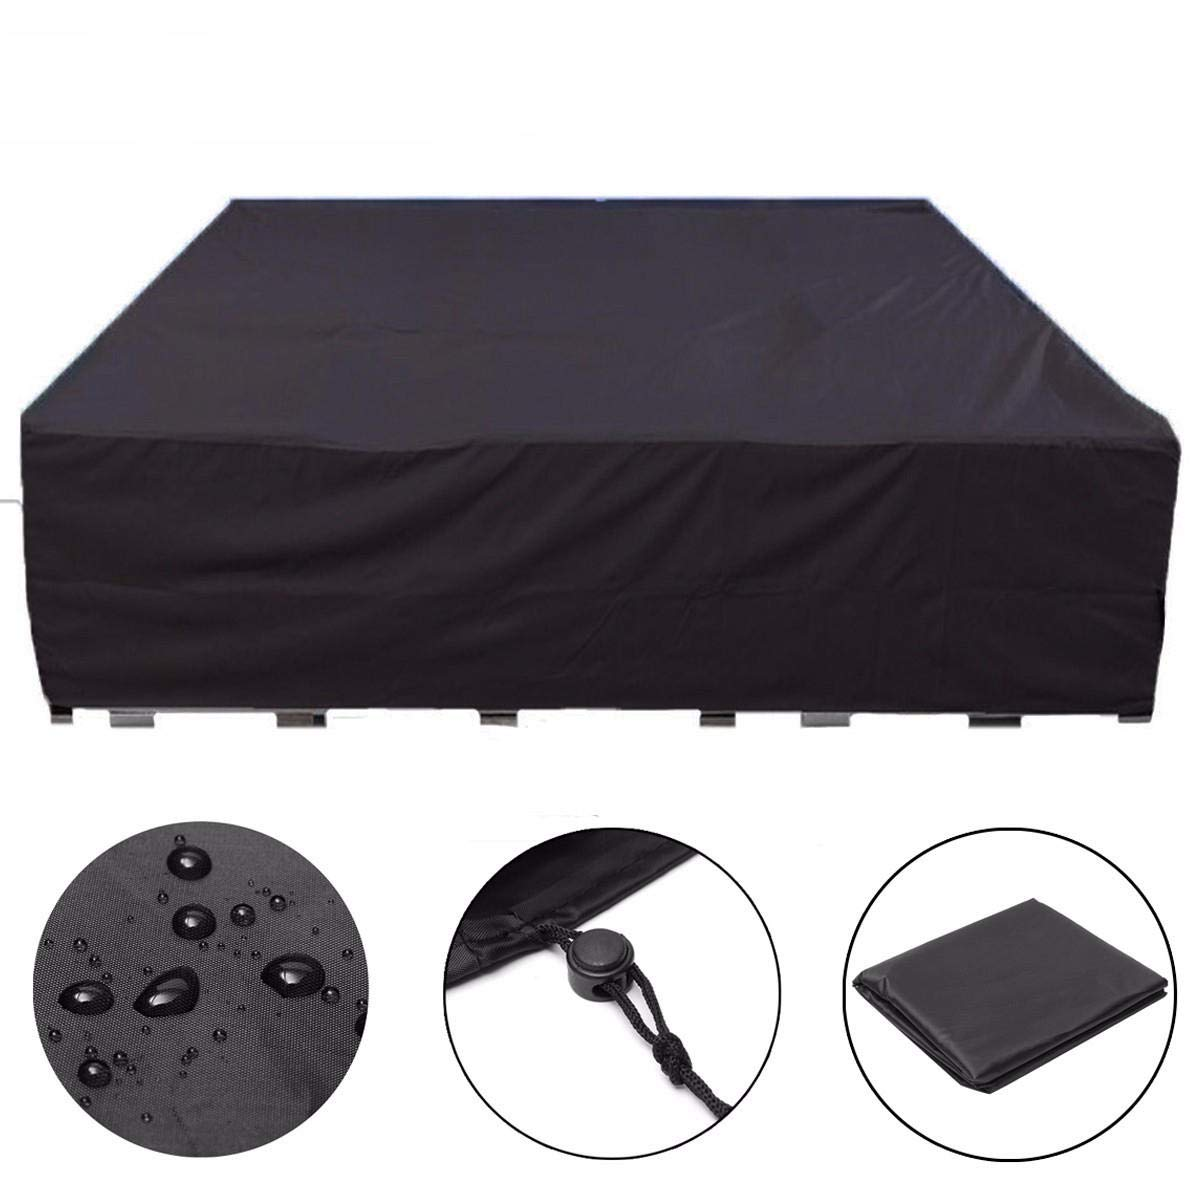 Anddoa Garden Waterproof Furniture Table Chair Bench Cover Protector